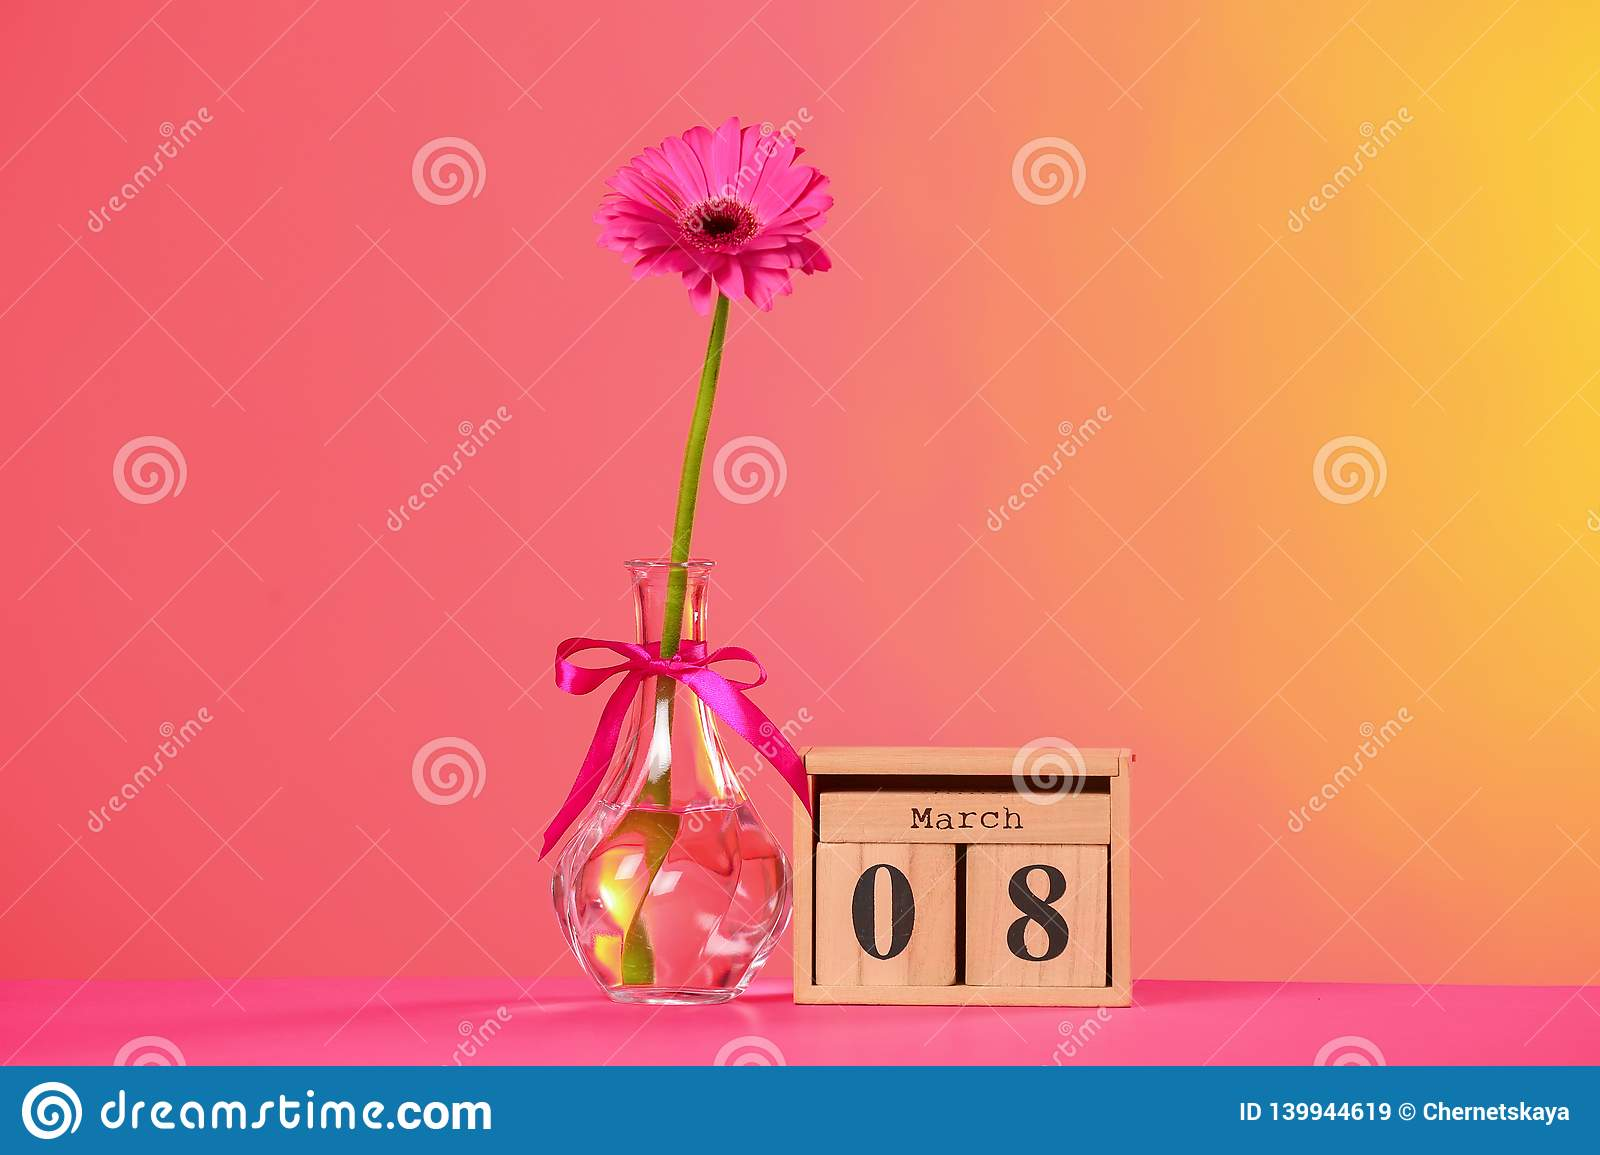 Vase with beautiful flower and wooden block calendar on table against color background